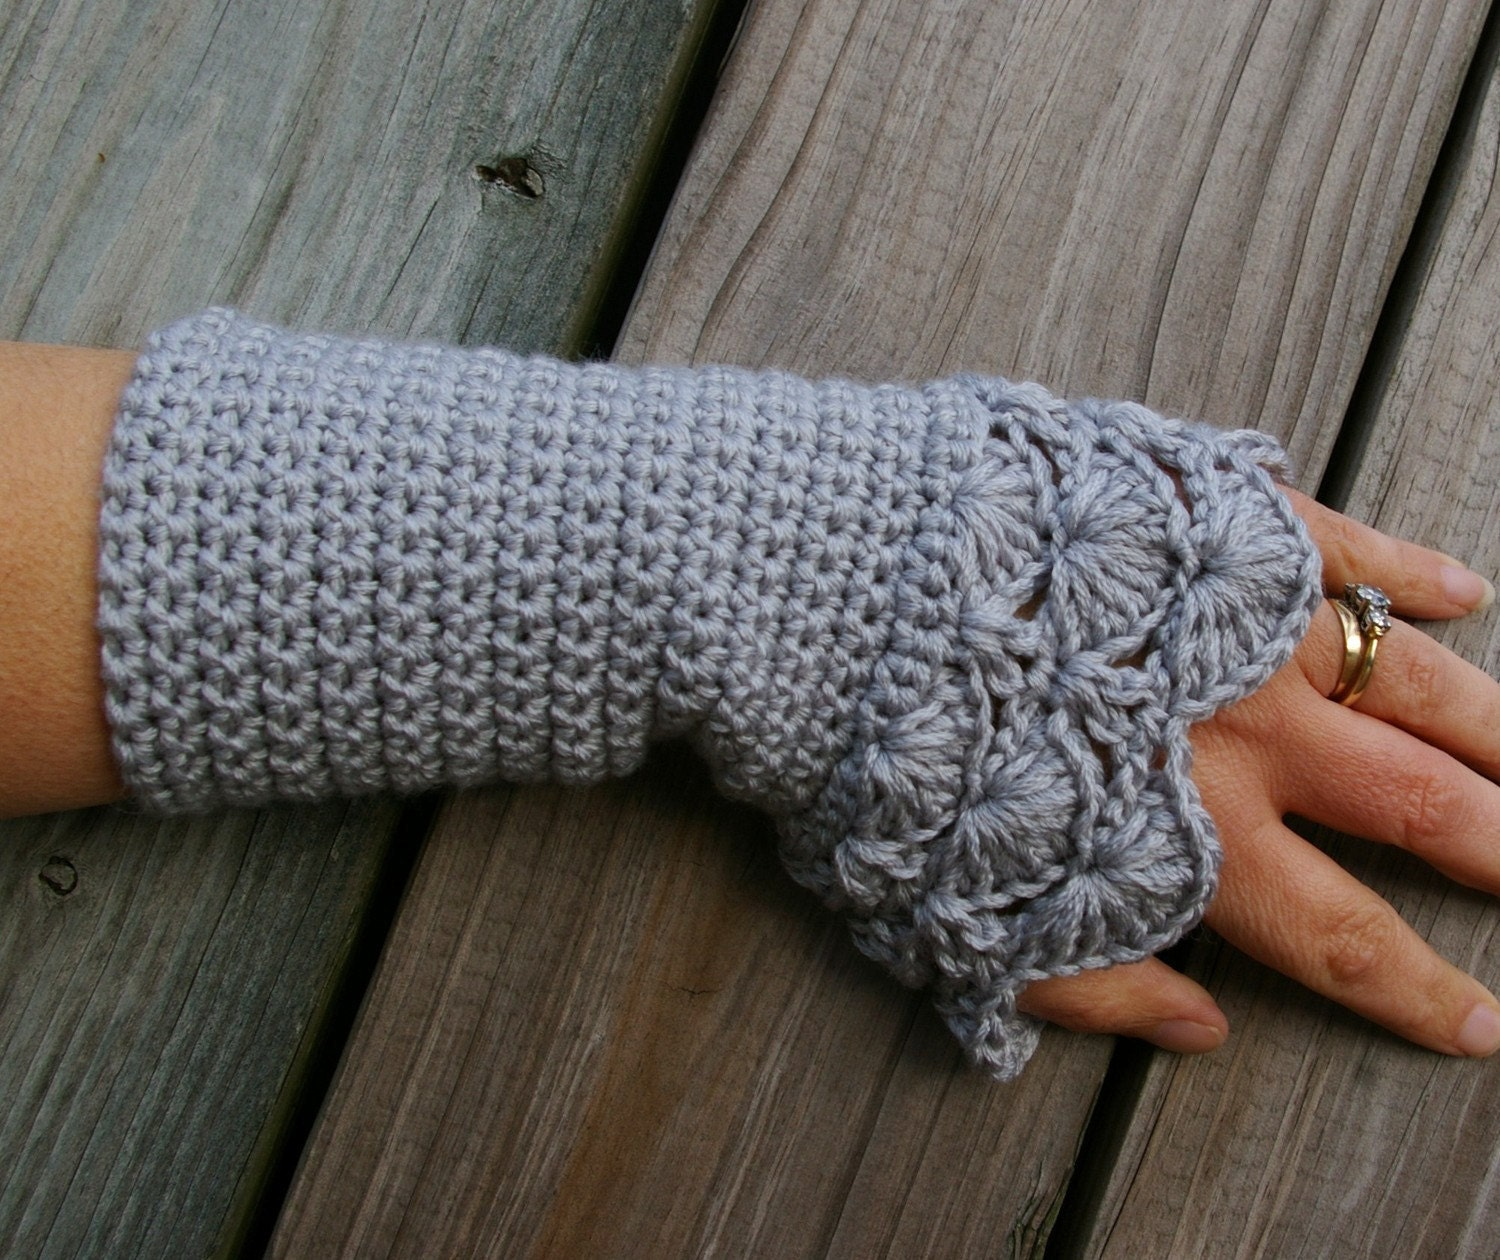 Free Crochet Patterns Hand Warmers : Crochet Arm Warmers Fingerless Gloves in Silver Grey